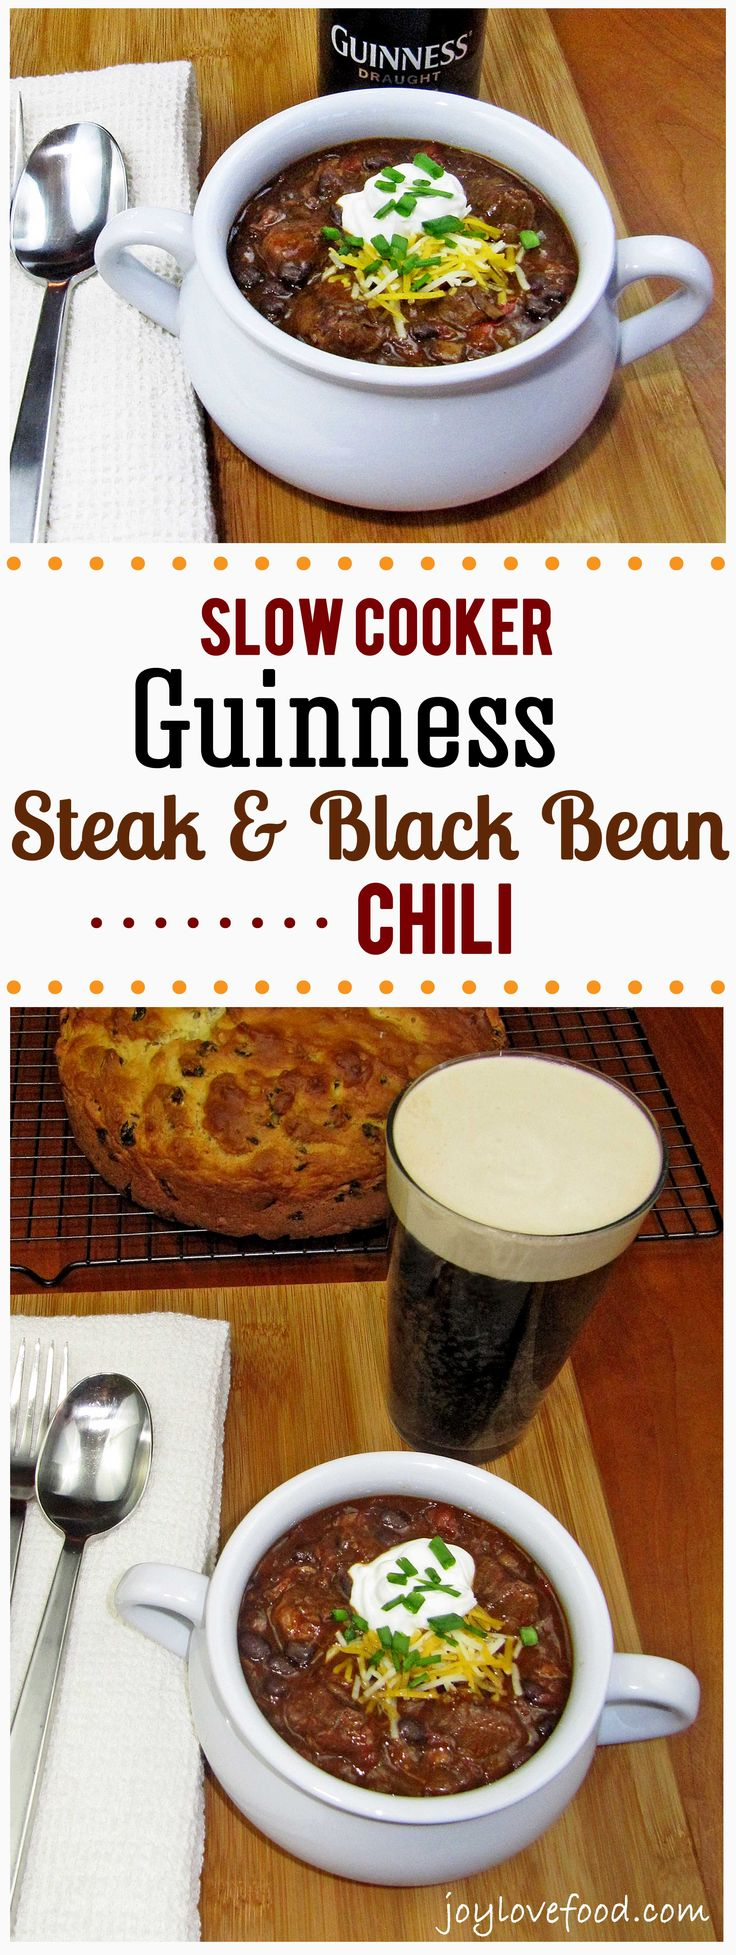 This delicious and hearty Slow Cooker Guinness Steak and Black Bean Chili is perfect for your next St. Patrick's Day get together or anytime you're craving some warm and satisfying comfort food.